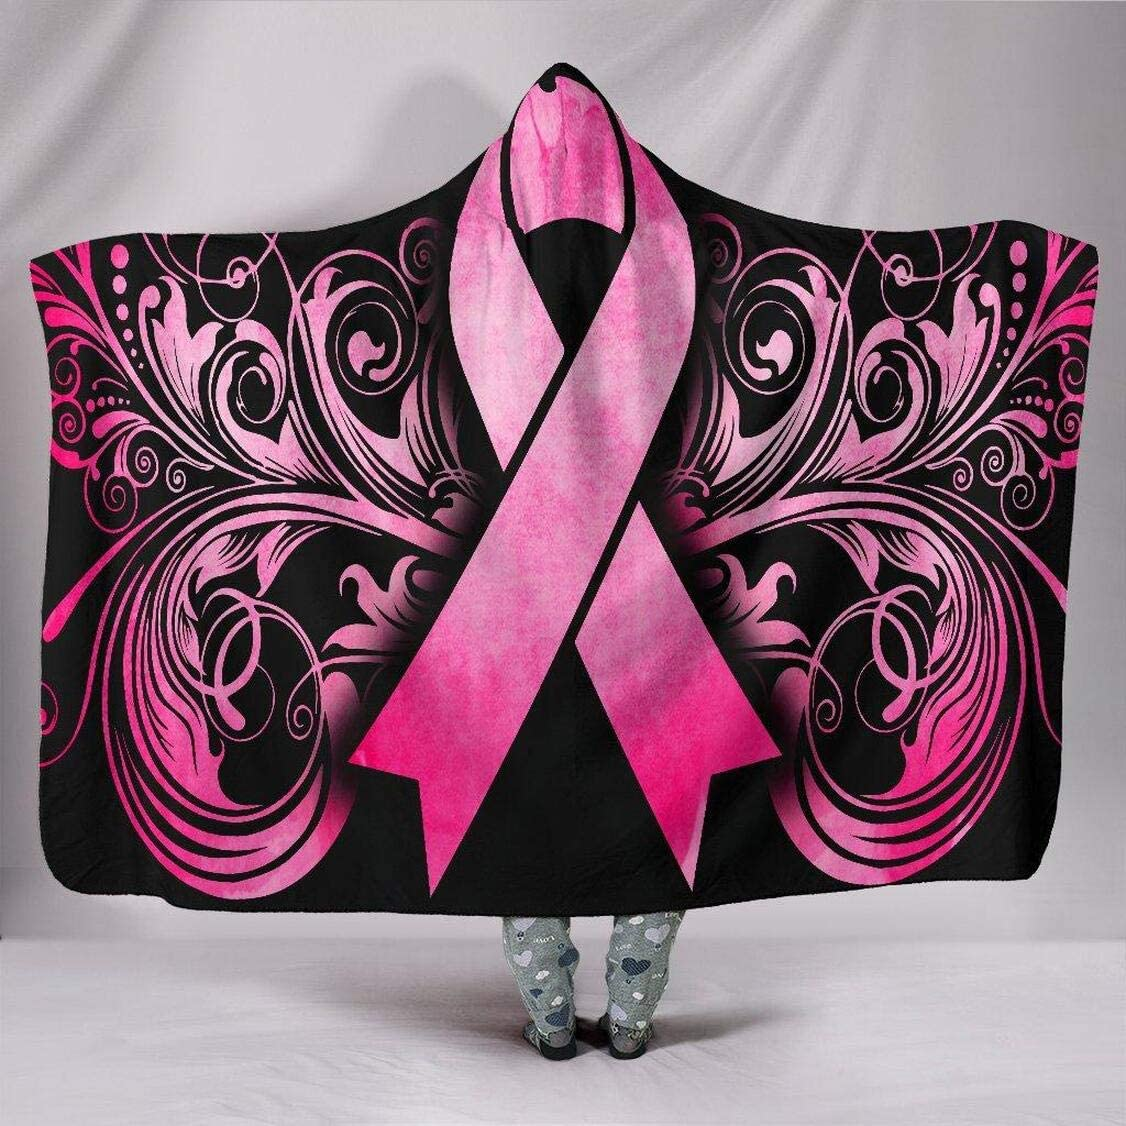 Personalized Breast Cancer Awareness - Portland Mall Blanket Hooded 2021 model Bla